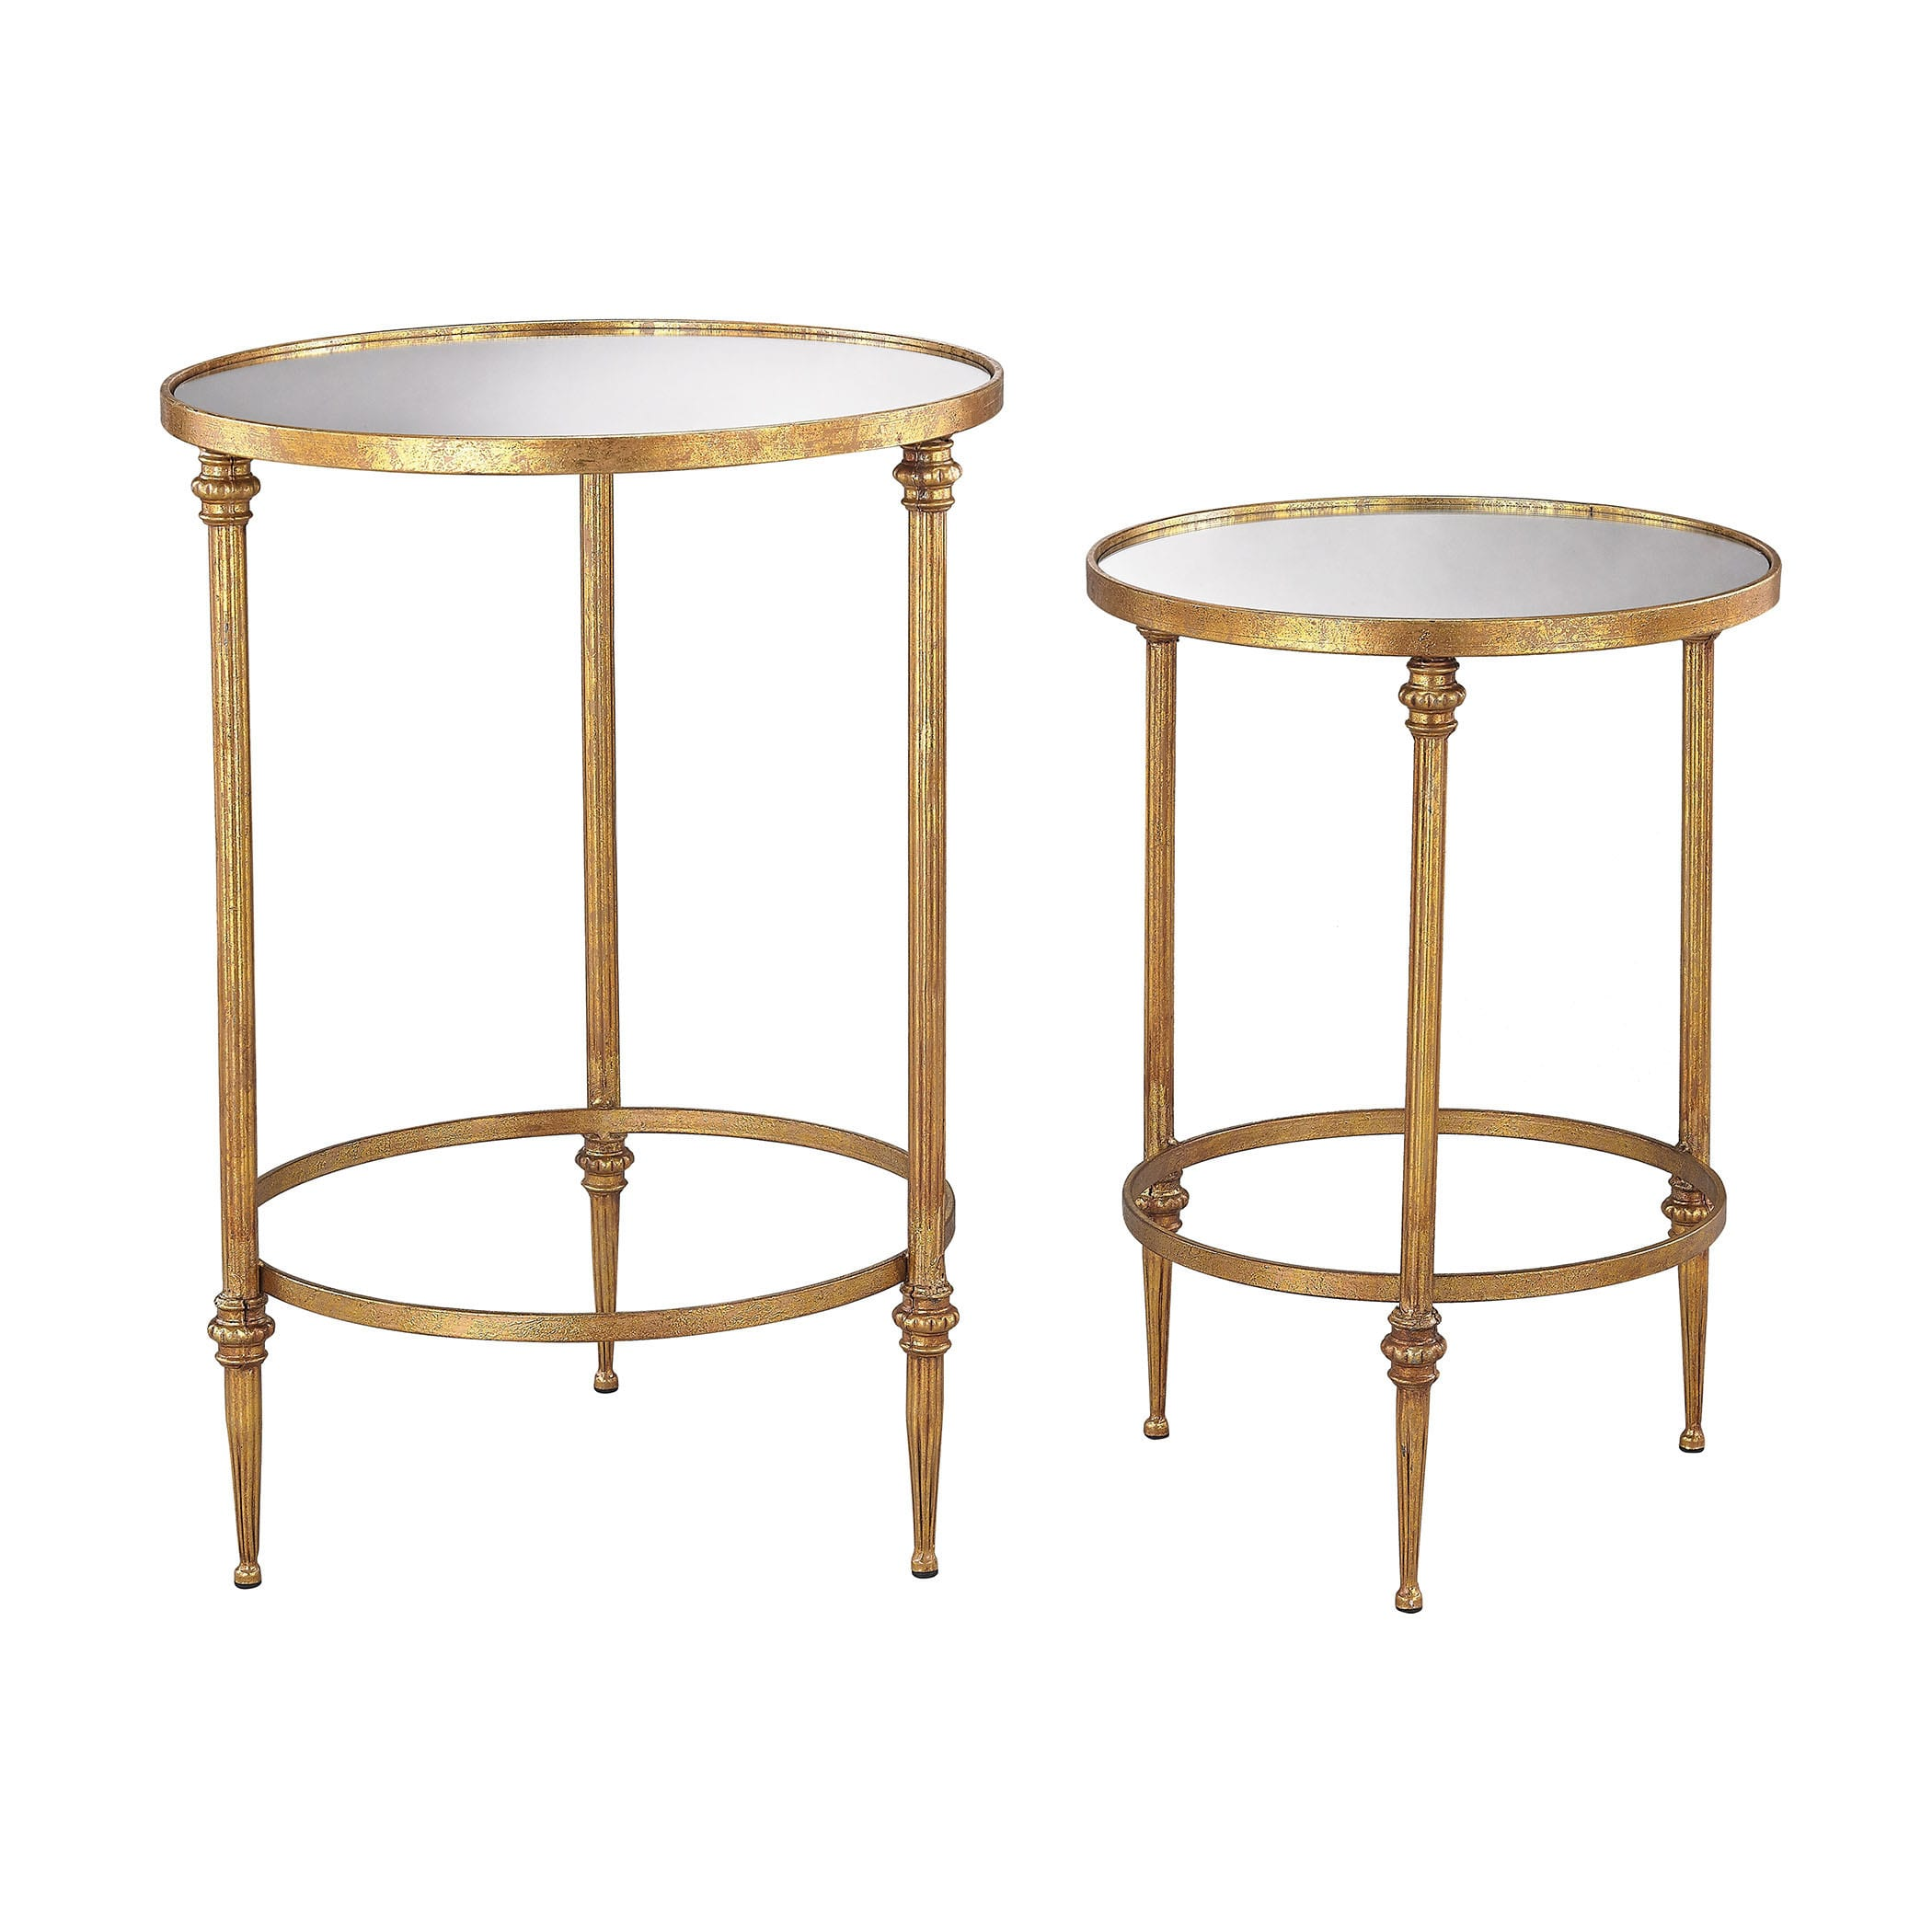 dimond home alcazar accent tables antique gold and mirror with matching mirrors free shipping today patio umbrella carved wood side table nate berkus sheets base coastal console